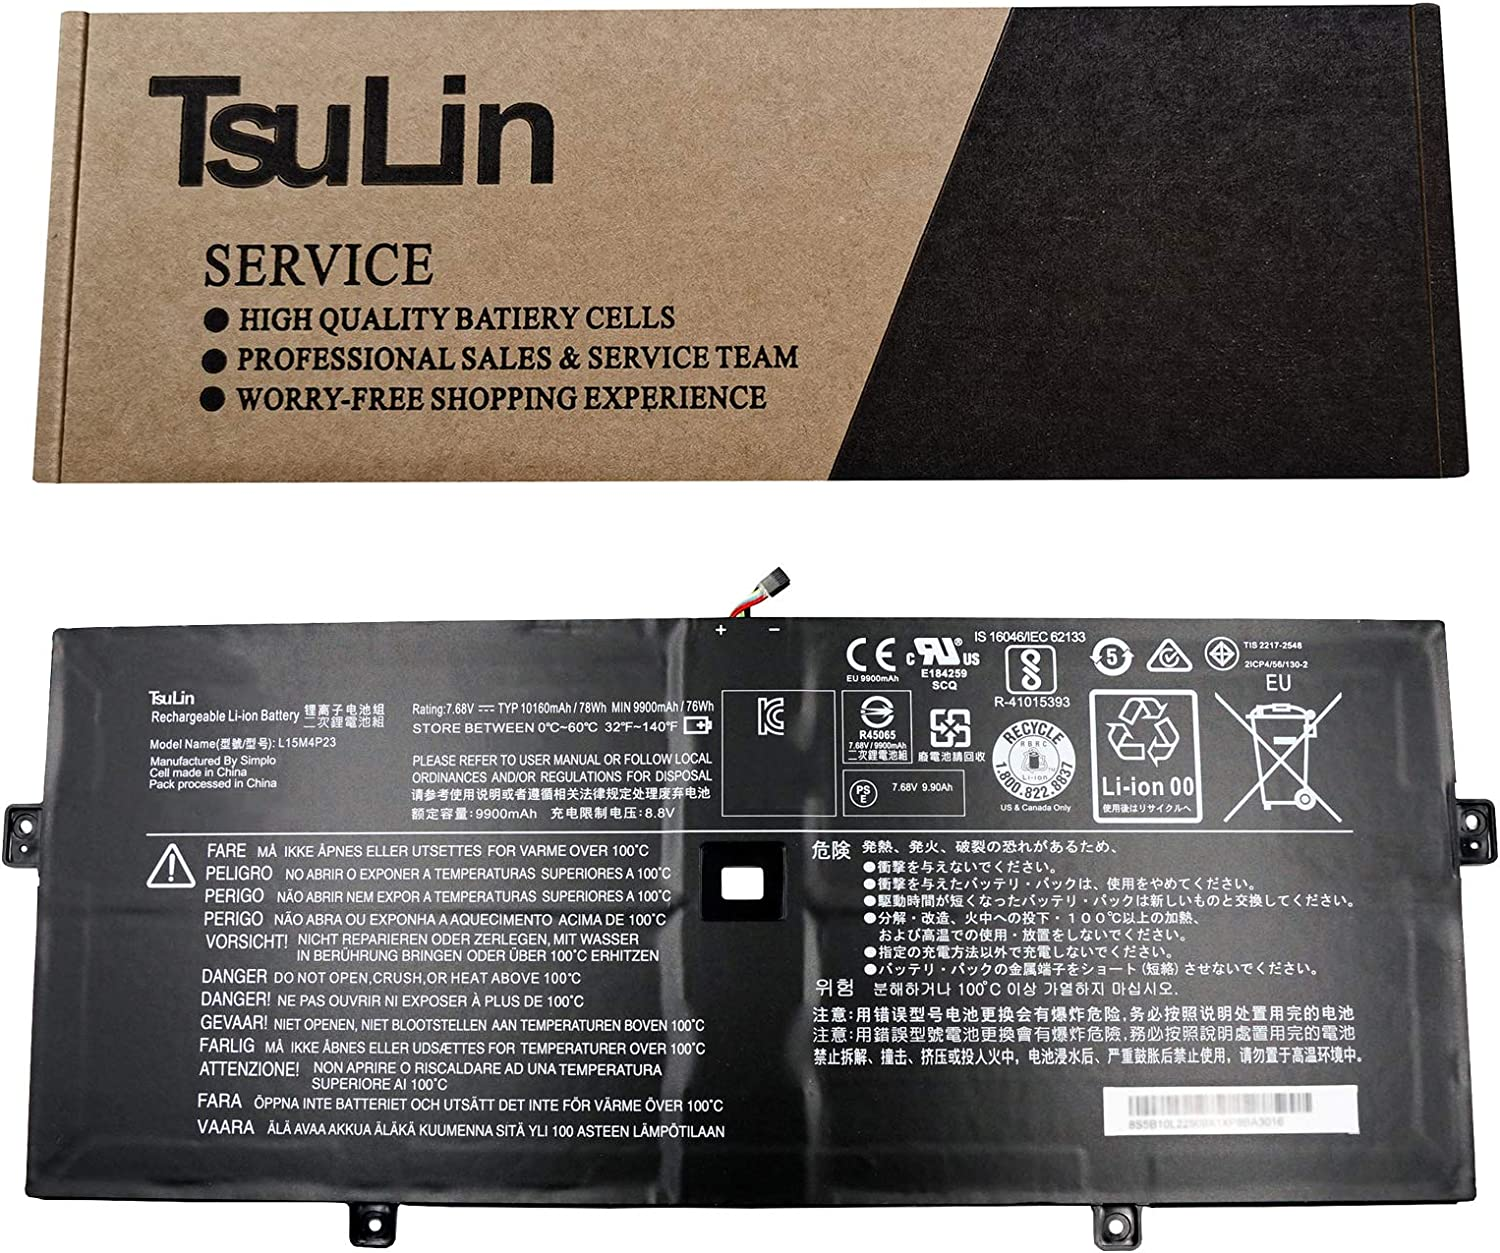 TsuLin L15M4P23 Laptop Battery Replacement for Lenovo Yoga 910 Yoga 5 Pro Series Notebook L15C4P21 L15C4P22 L15M4P21 7.68V 78Wh 10160mAh